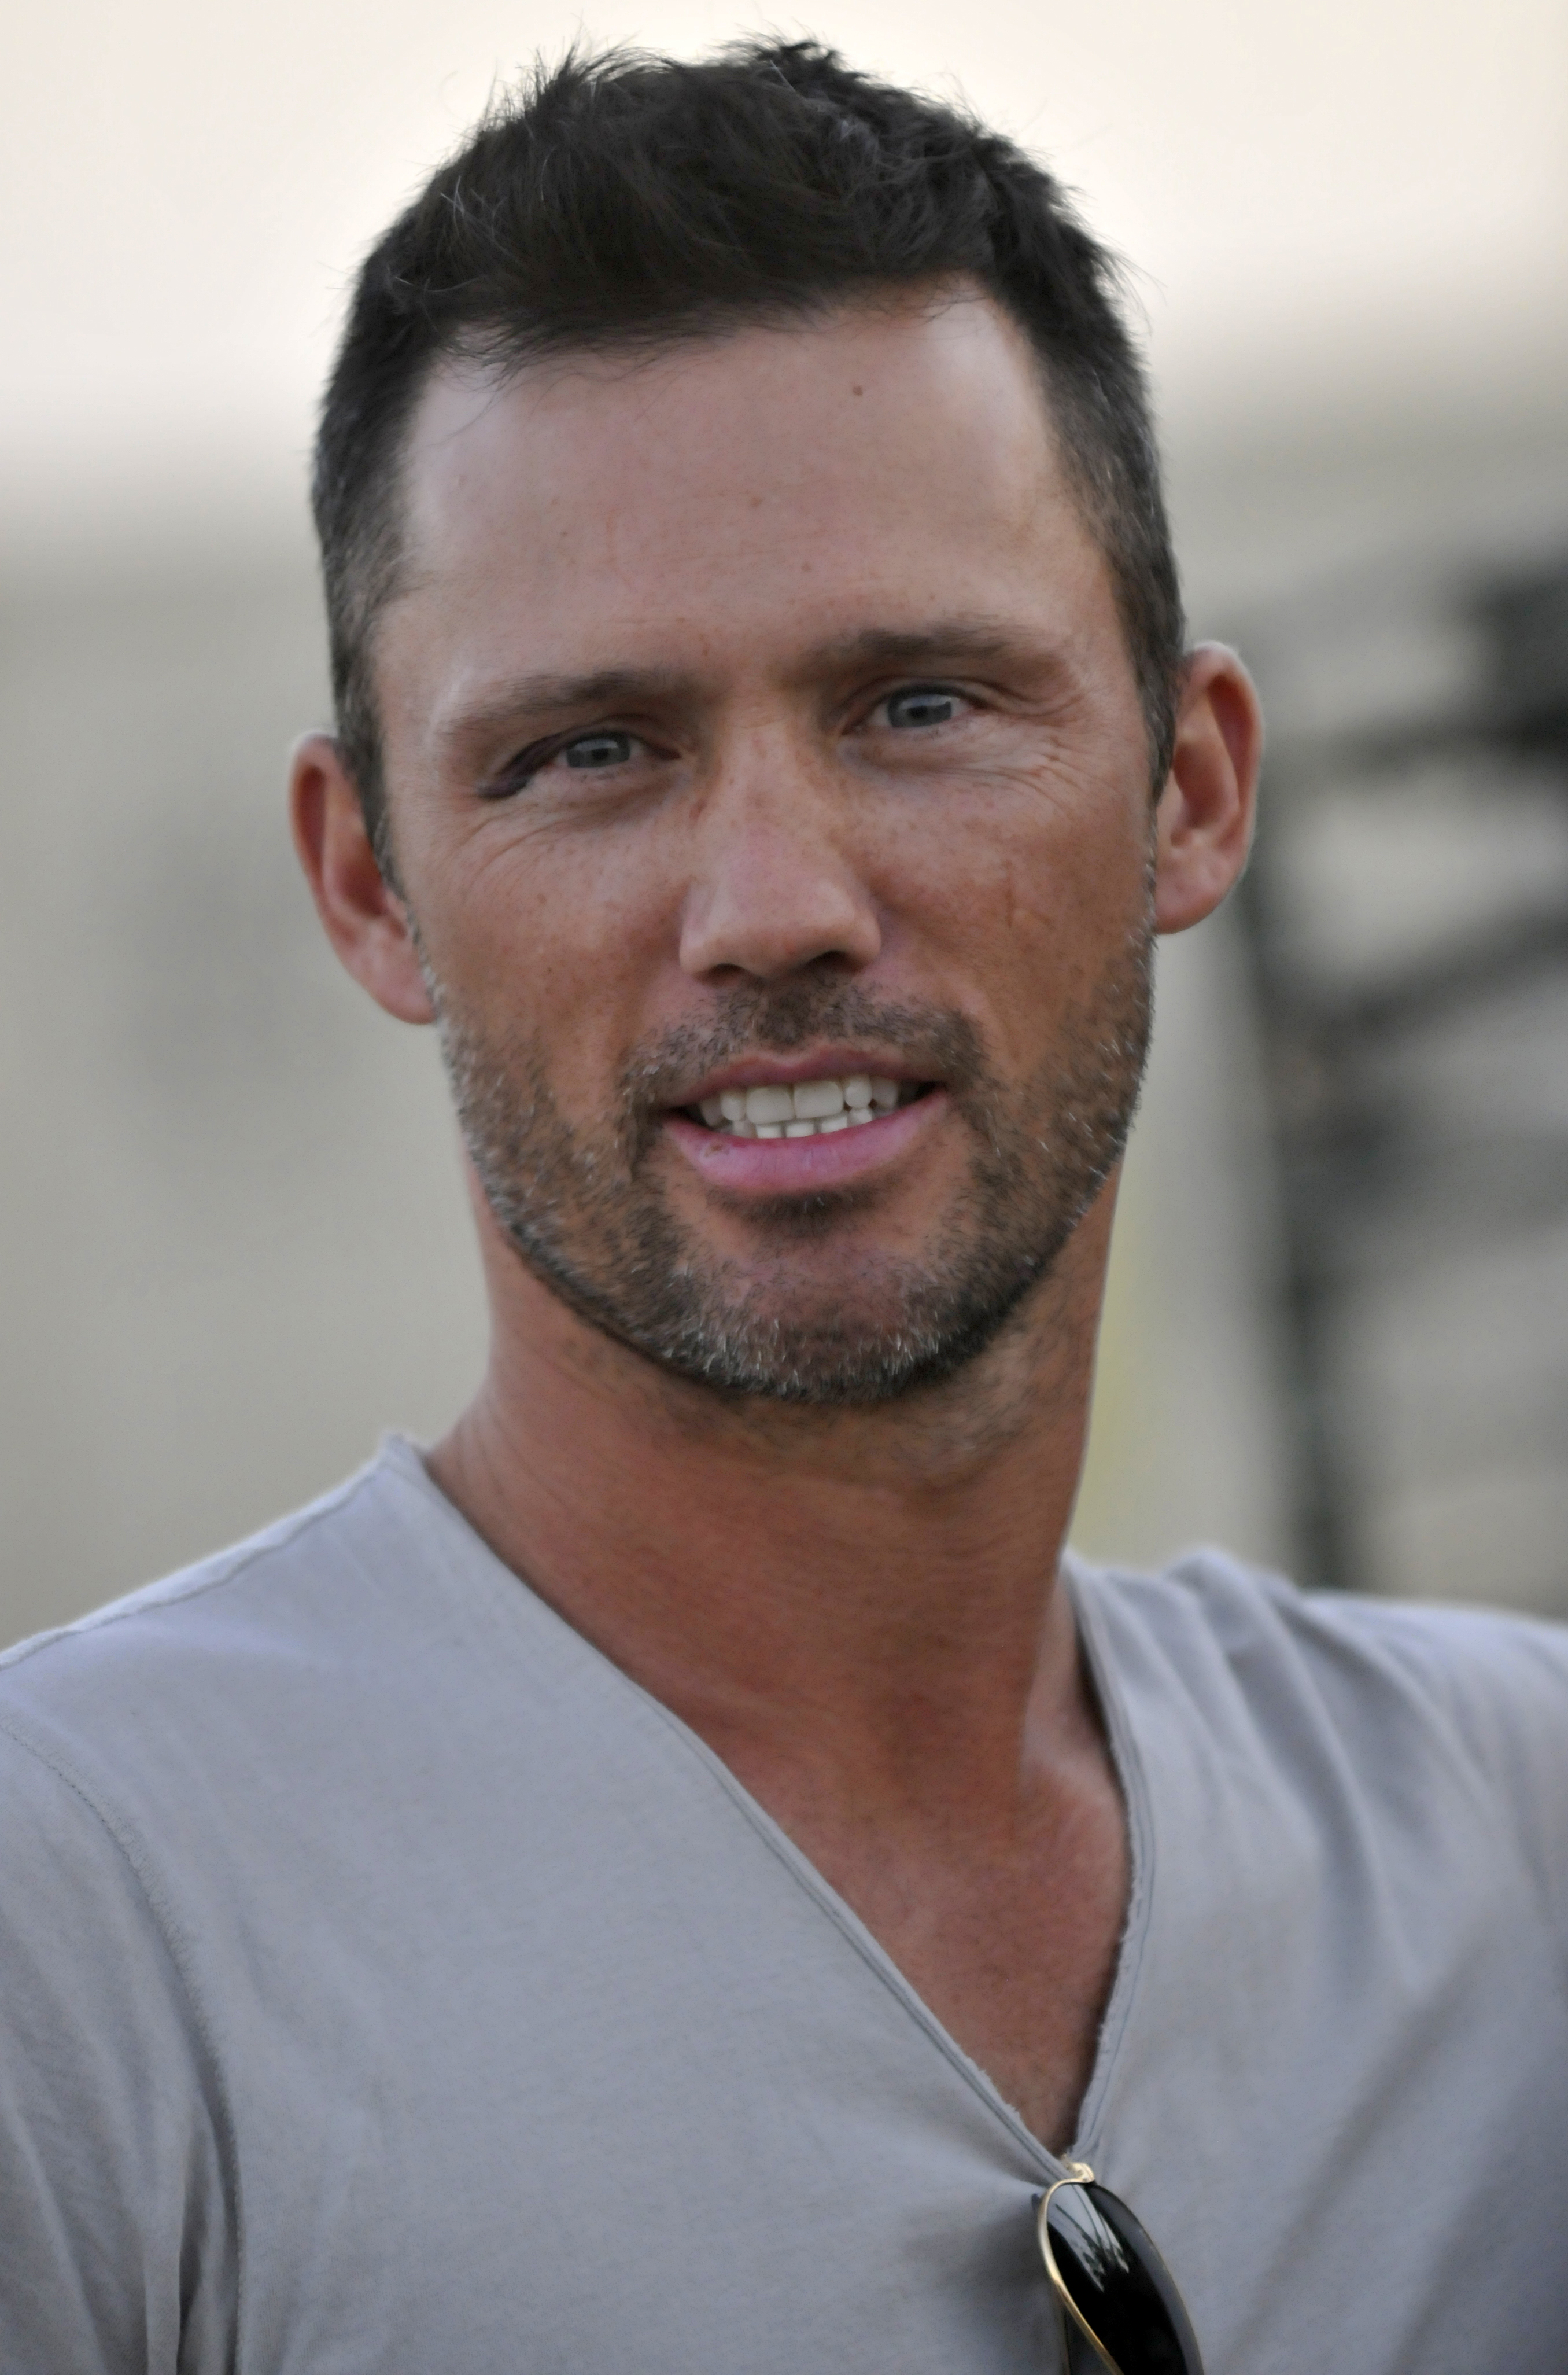 The 50-year old son of father (?) and mother(?) Jeffrey Donovan in 2018 photo. Jeffrey Donovan earned a  million dollar salary - leaving the net worth at 10 million in 2018